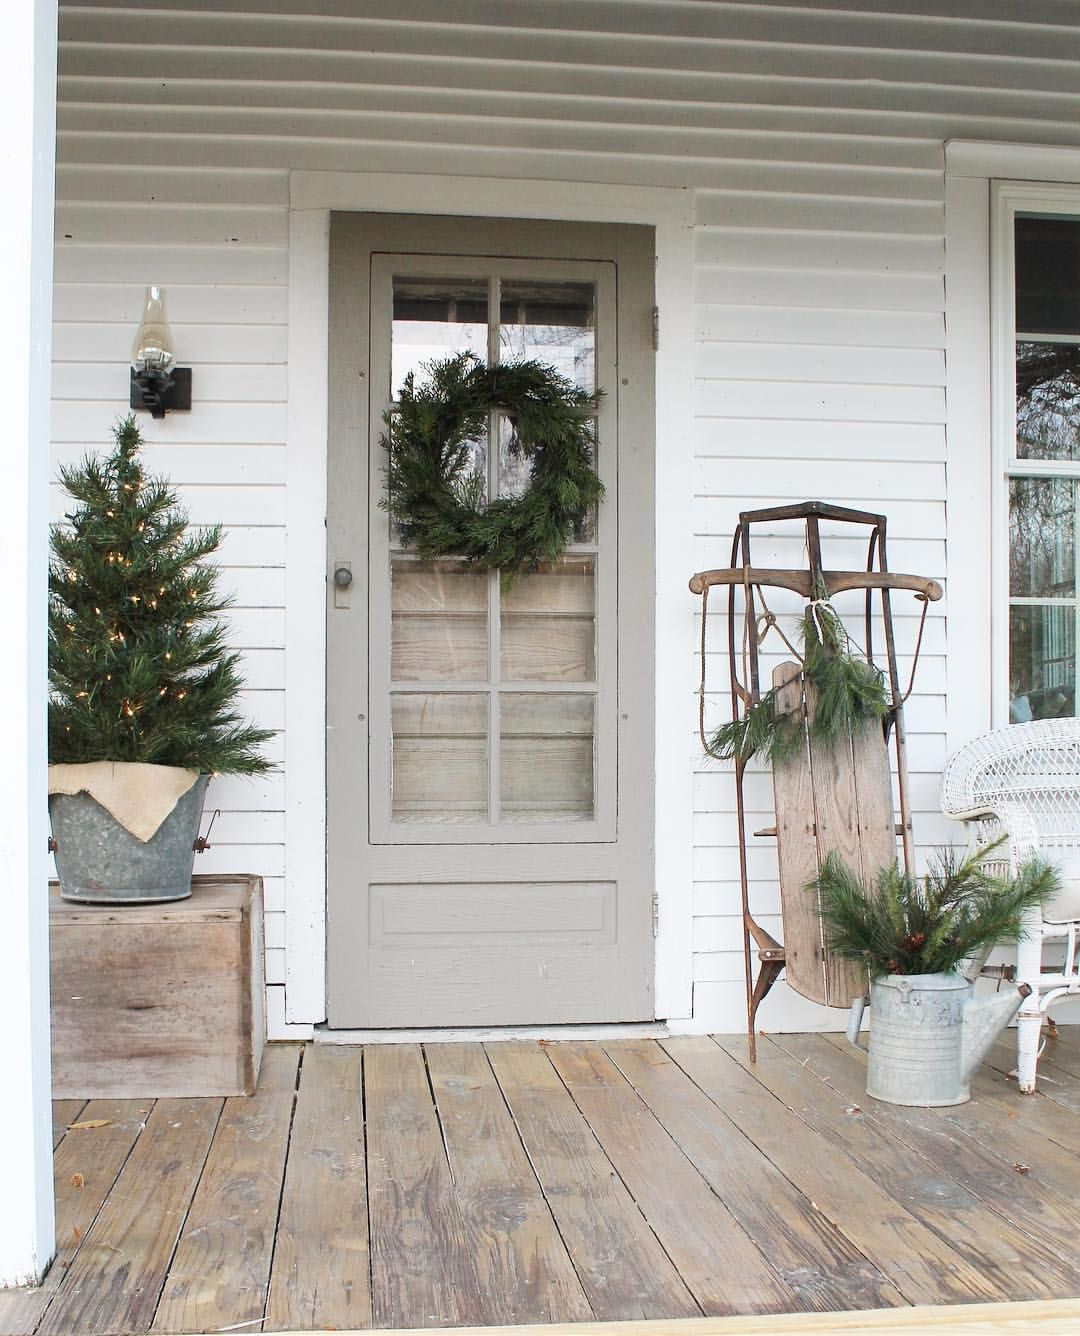 Farmhouse Front Porch Railing Ideas See This Instagram Photo By Farmhouse5540 2 189 Likes